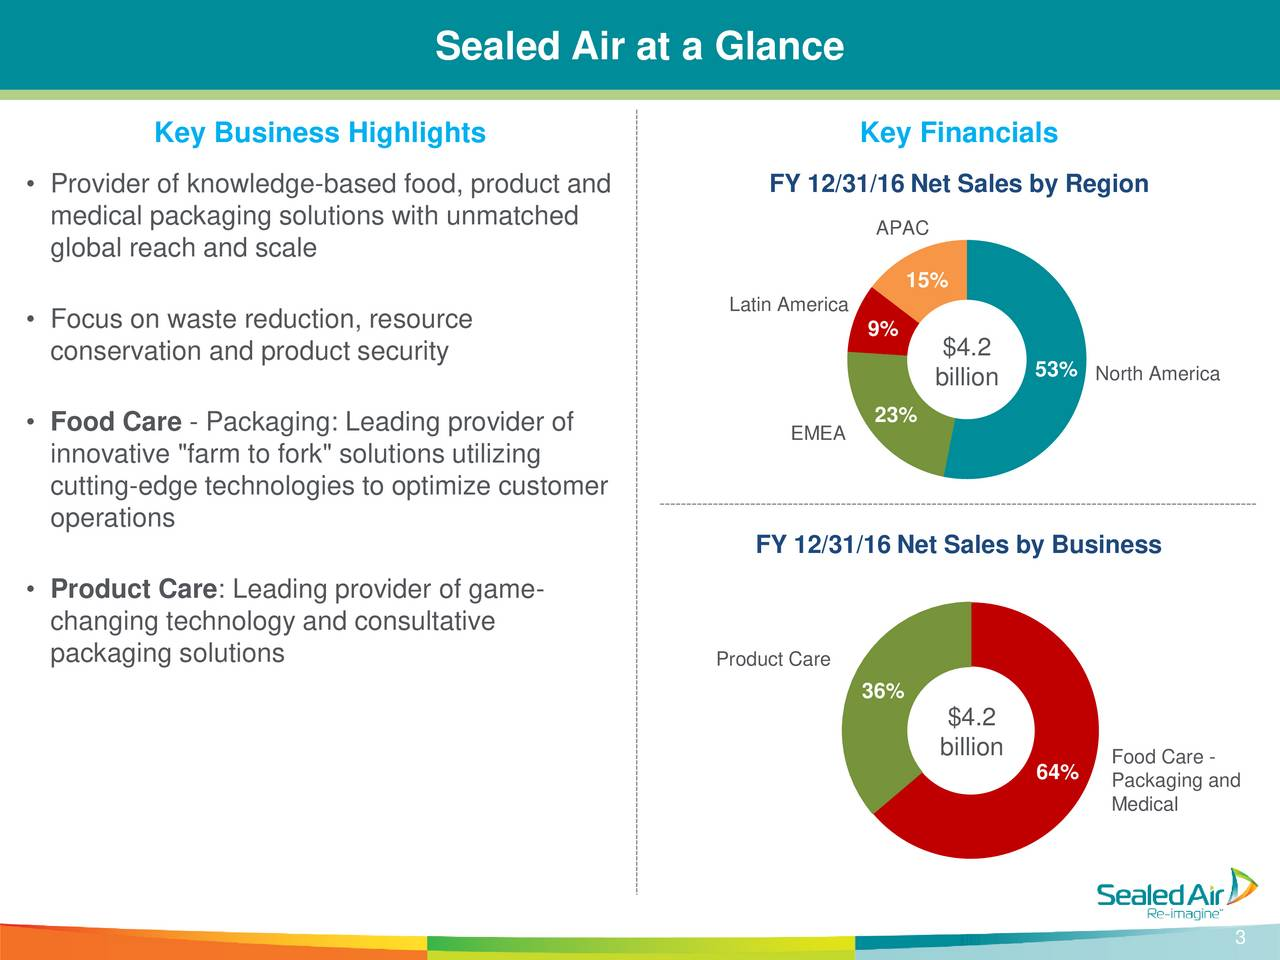 sealed air corporations leveraged capitalisation Sealed air stock analysis, sealed air valuation sealed air is highly leveraged in comparison to industrial products peers should you buy sealed air corporation (see) ahead of earnings comments on this video and sealed air stock post.